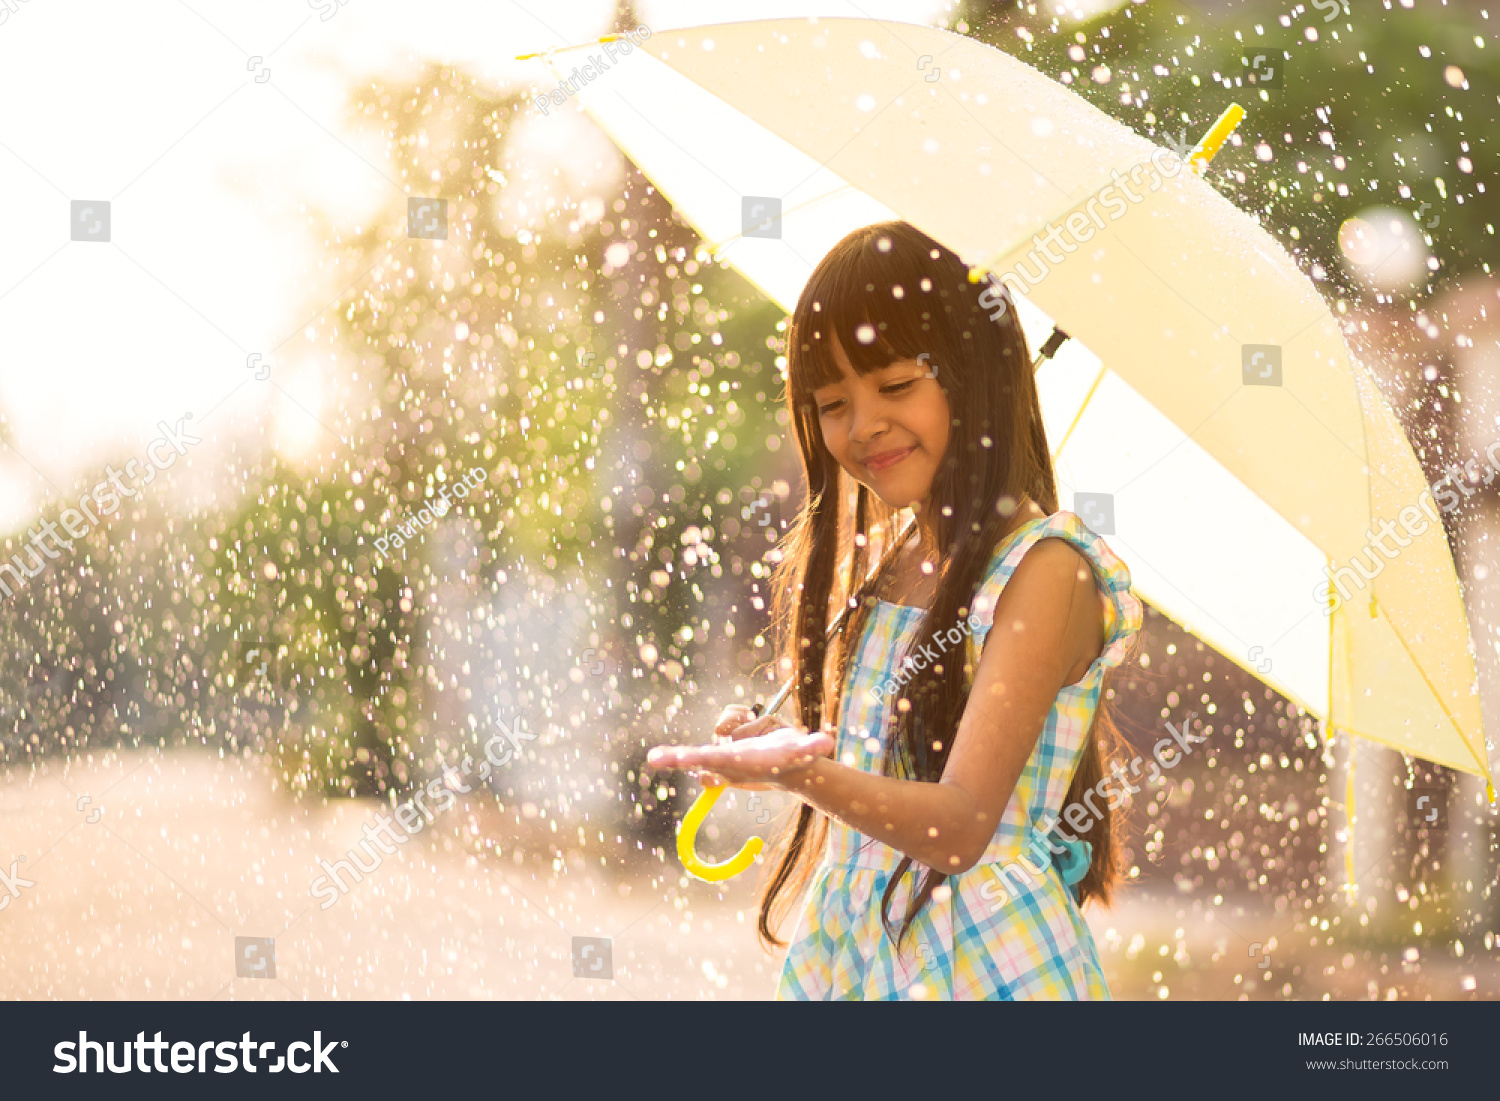 Pretty Young Asian Girl In The Rain With Umbrella Stock